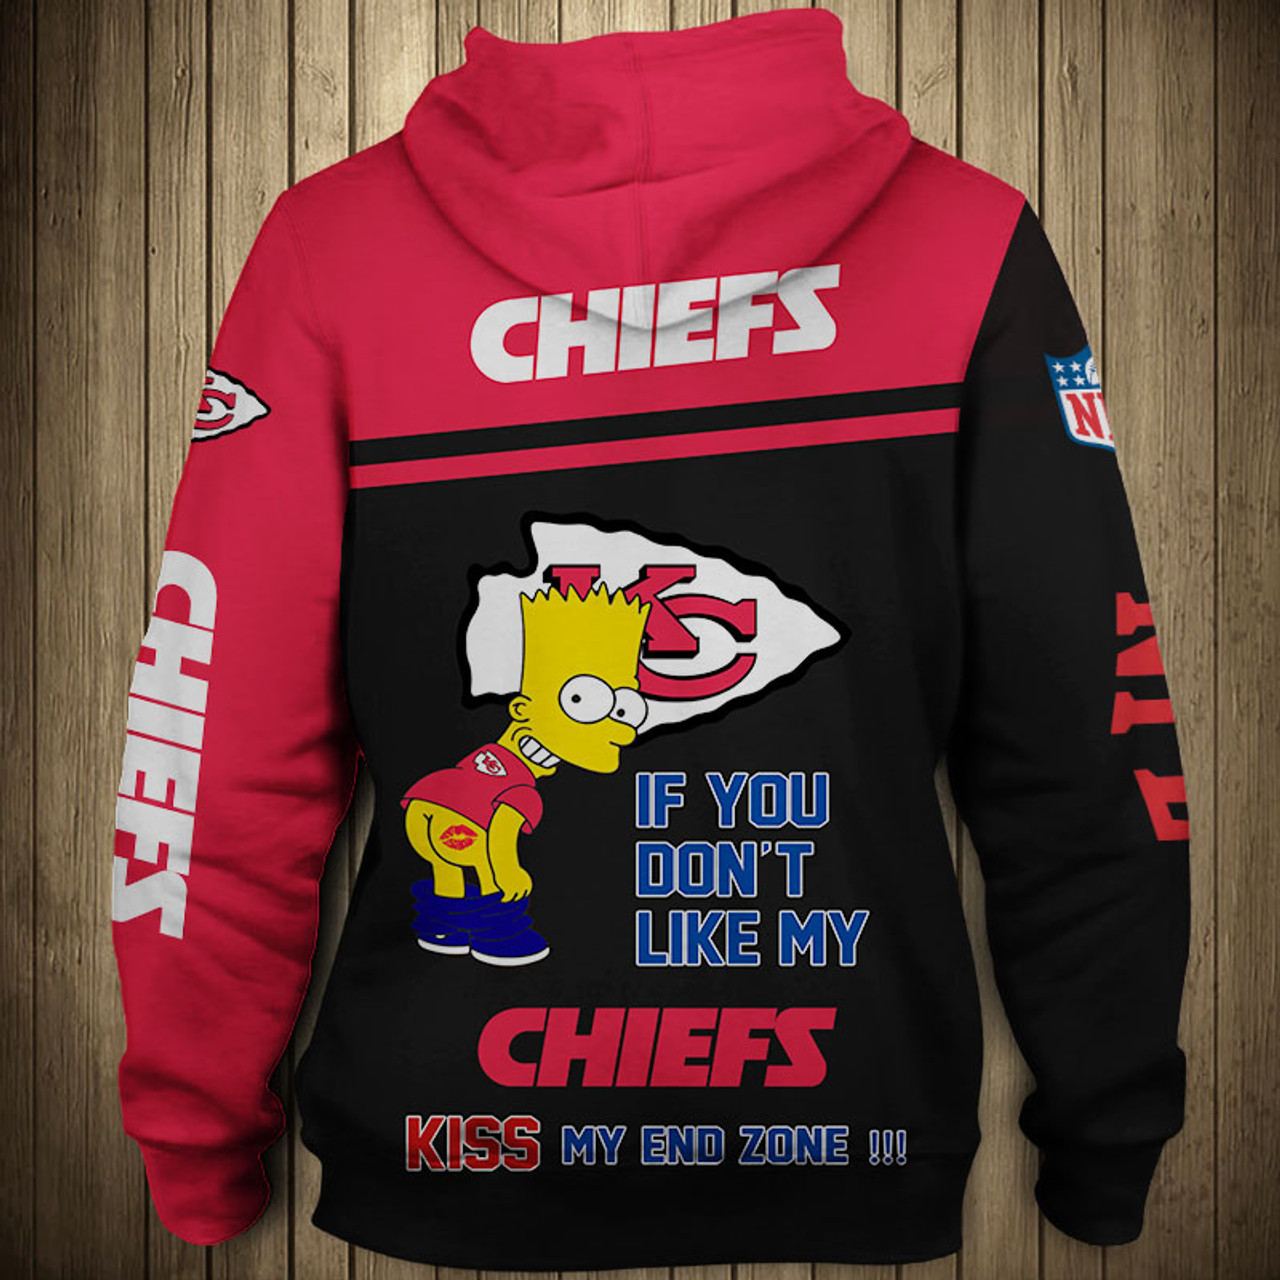 sports shoes d14c9 92b33 **(OFFICIAL-N.F.L.KANSAS-CITY-CHIEFS-PULLOVER-HOODIES/3D-CUSTOM-CHIEFS-LOGOS  & OFFICIAL-CHIEFS-TEAM-COLORS/CUSTOM-3D-DETAILED-GRAPHIC-PRINTED-DOUBLE-S...